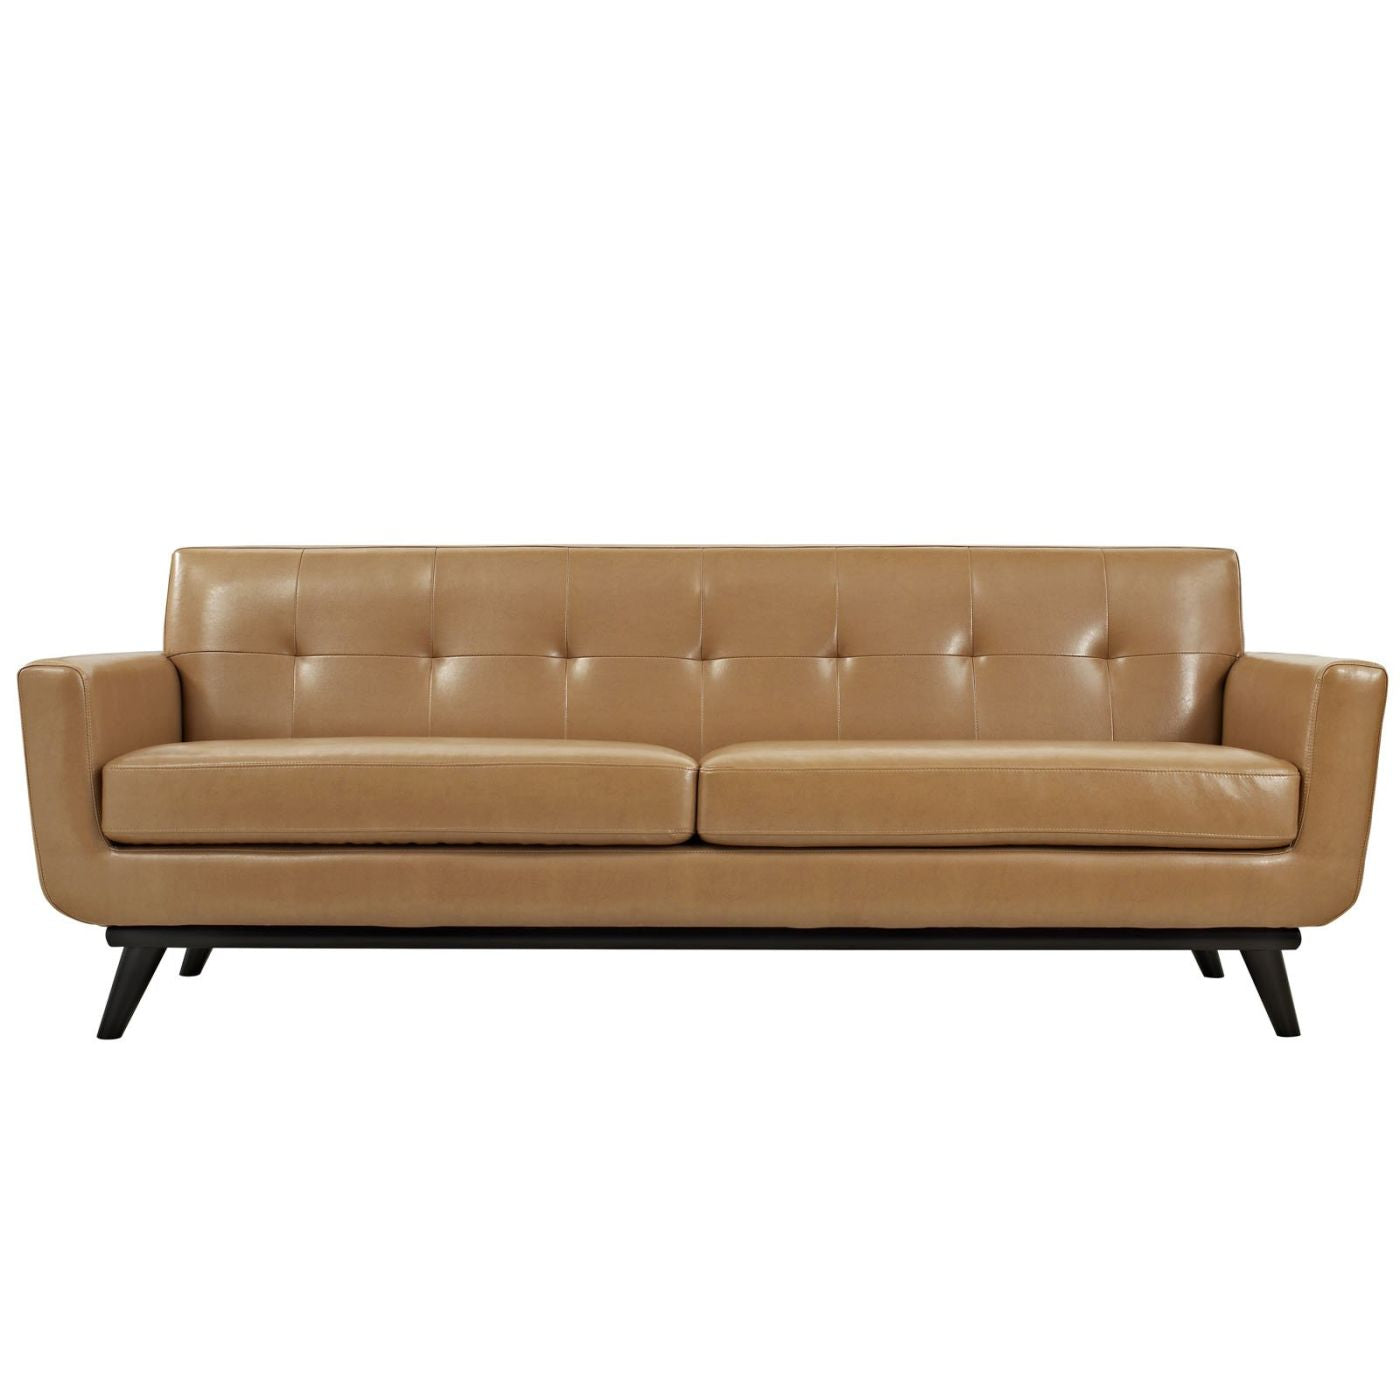 Picture of: Modway Sofas On Sale Eei 1338 Tan Engage Mid Century Modern Bonded Leather Sofa Only Only 1 062 80 At Contemporary Furniture Warehouse